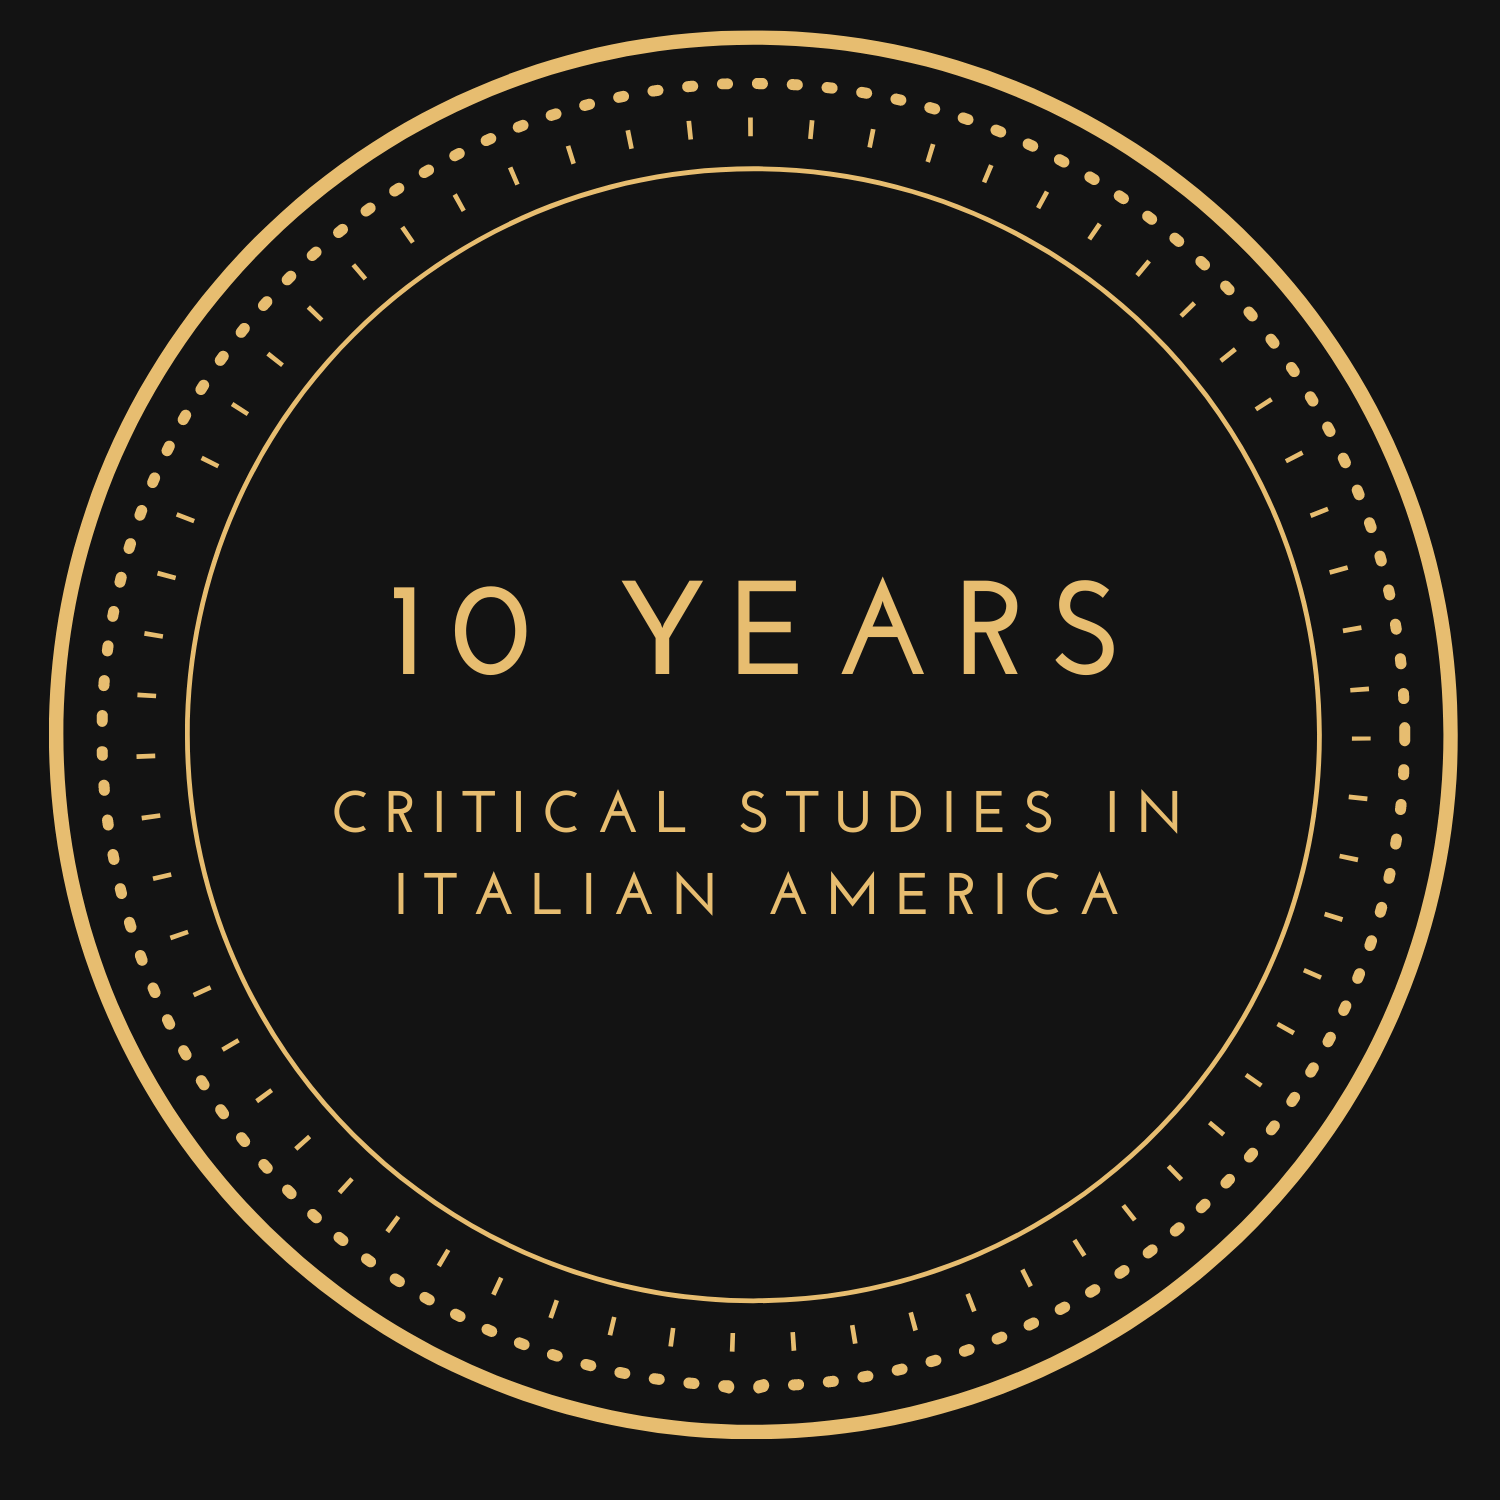 10 Years Critical Studies